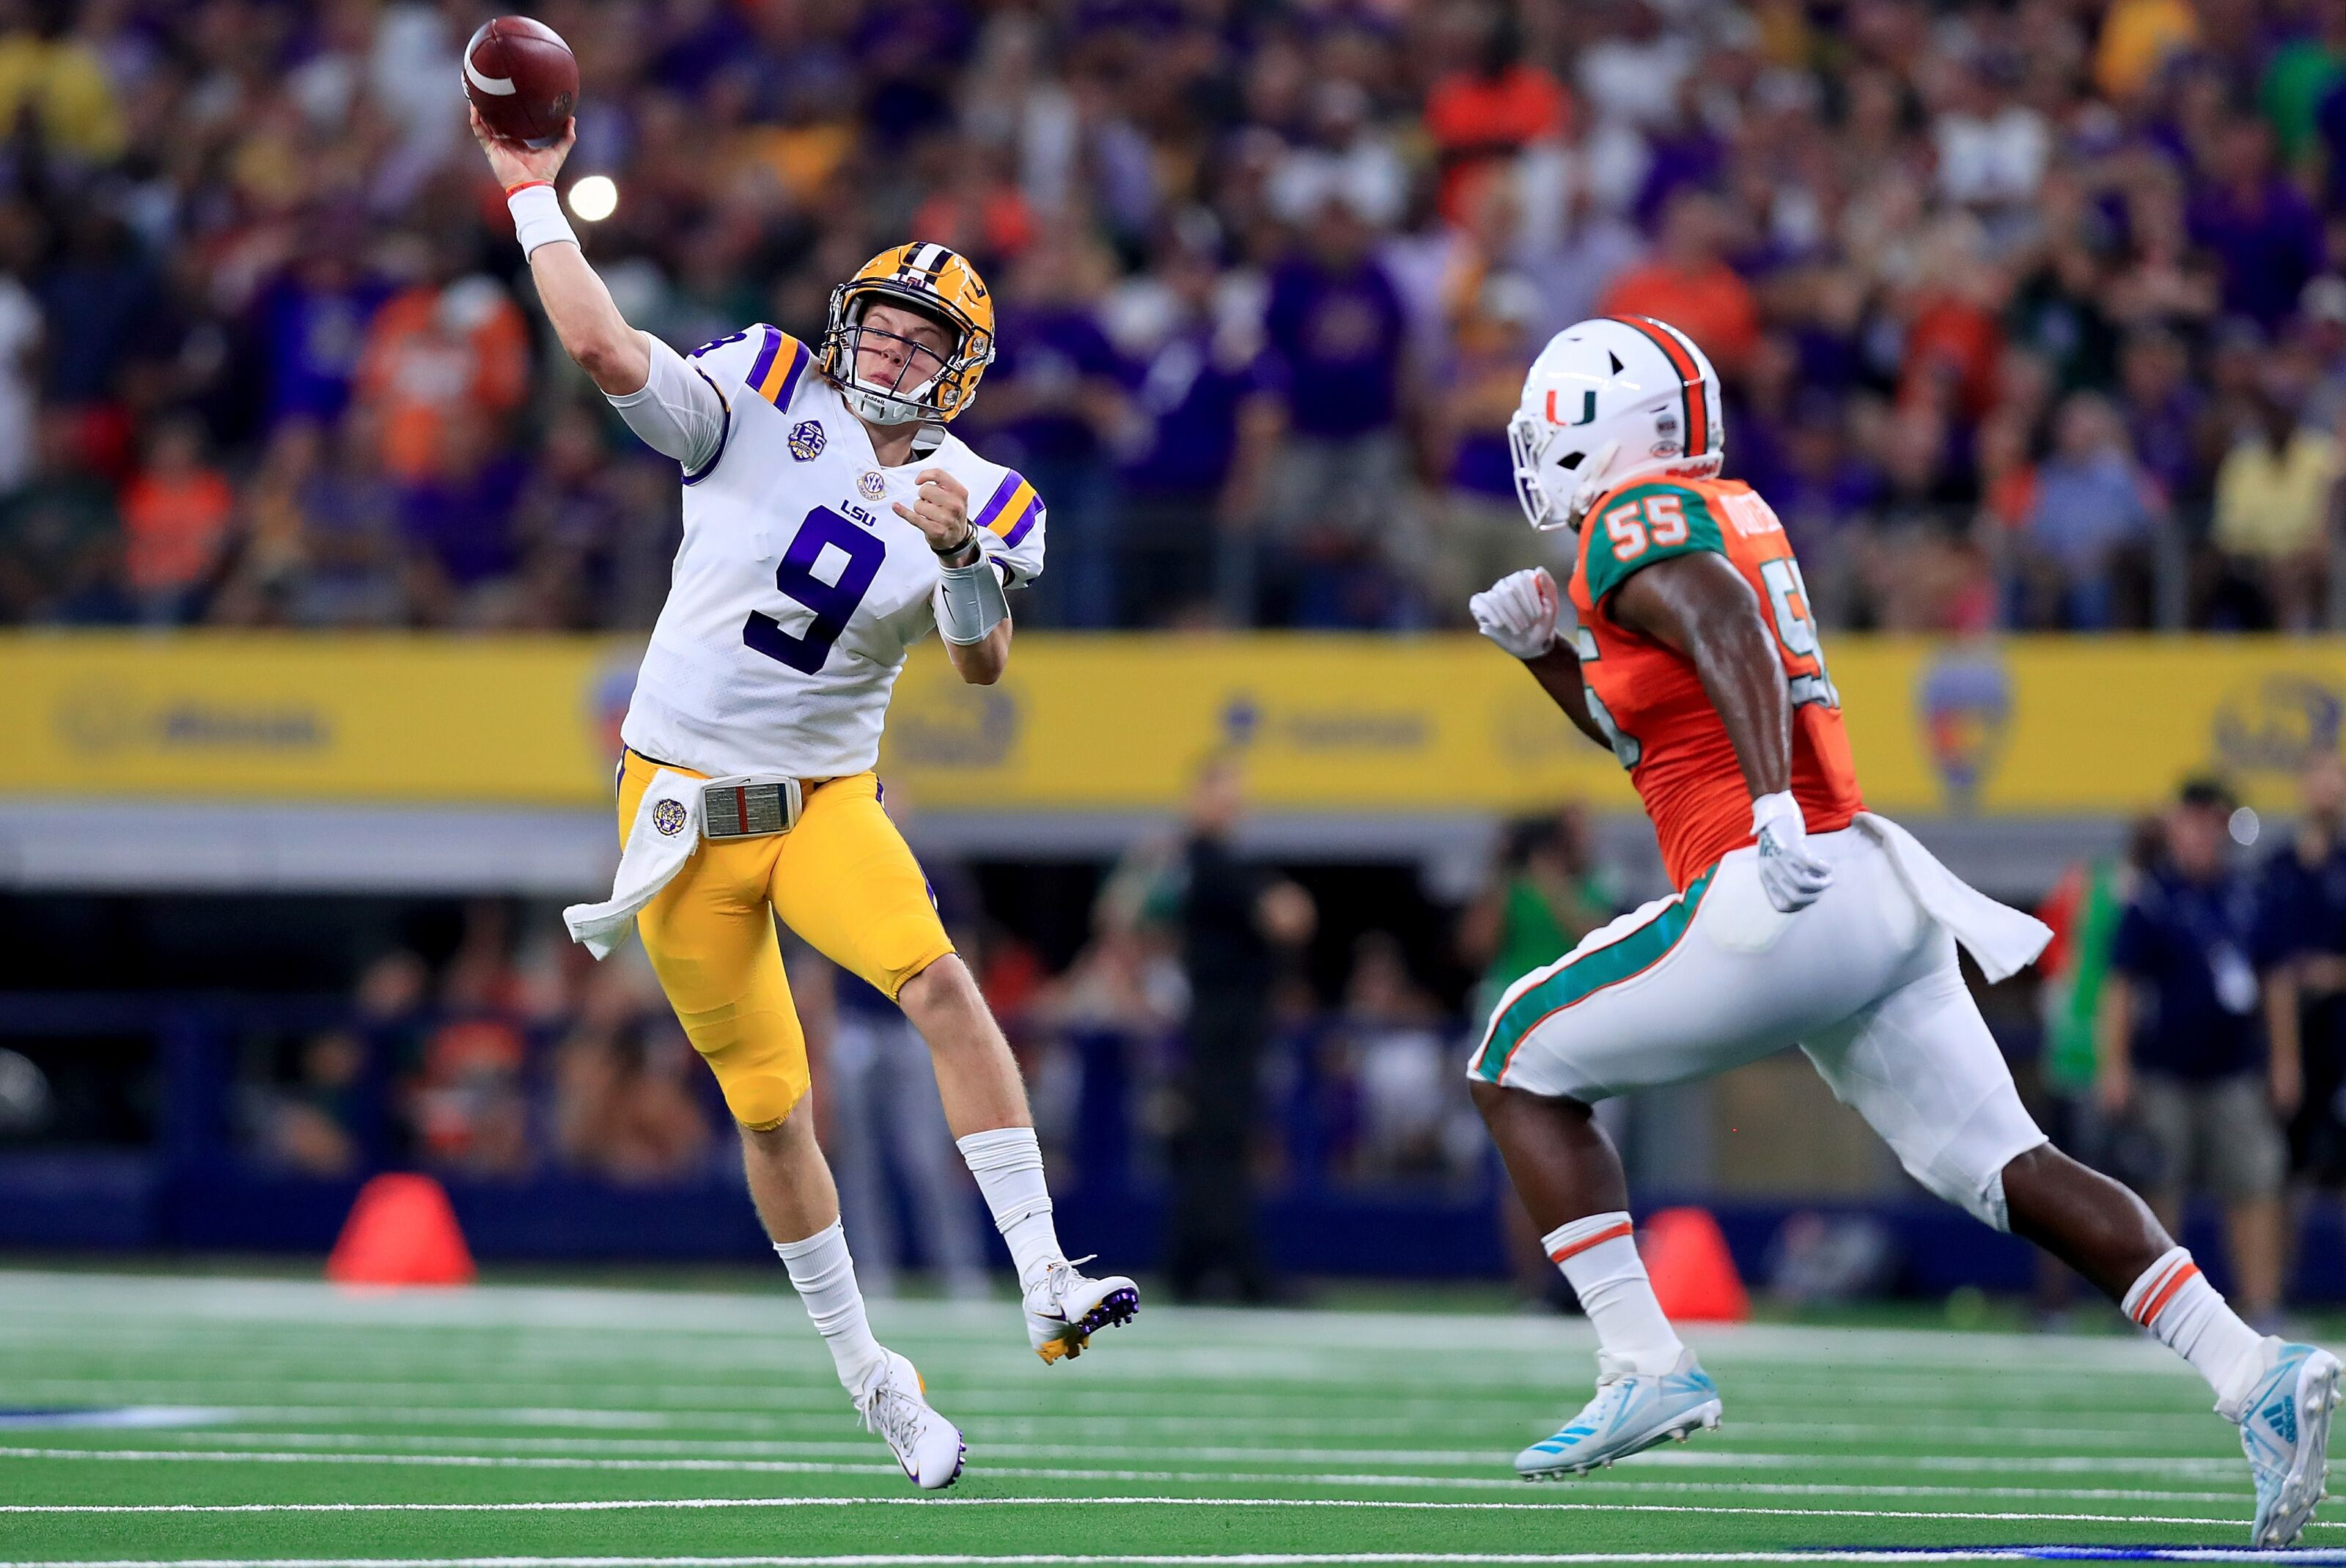 d4c722507 LSU football could make yet another statement with Florida win